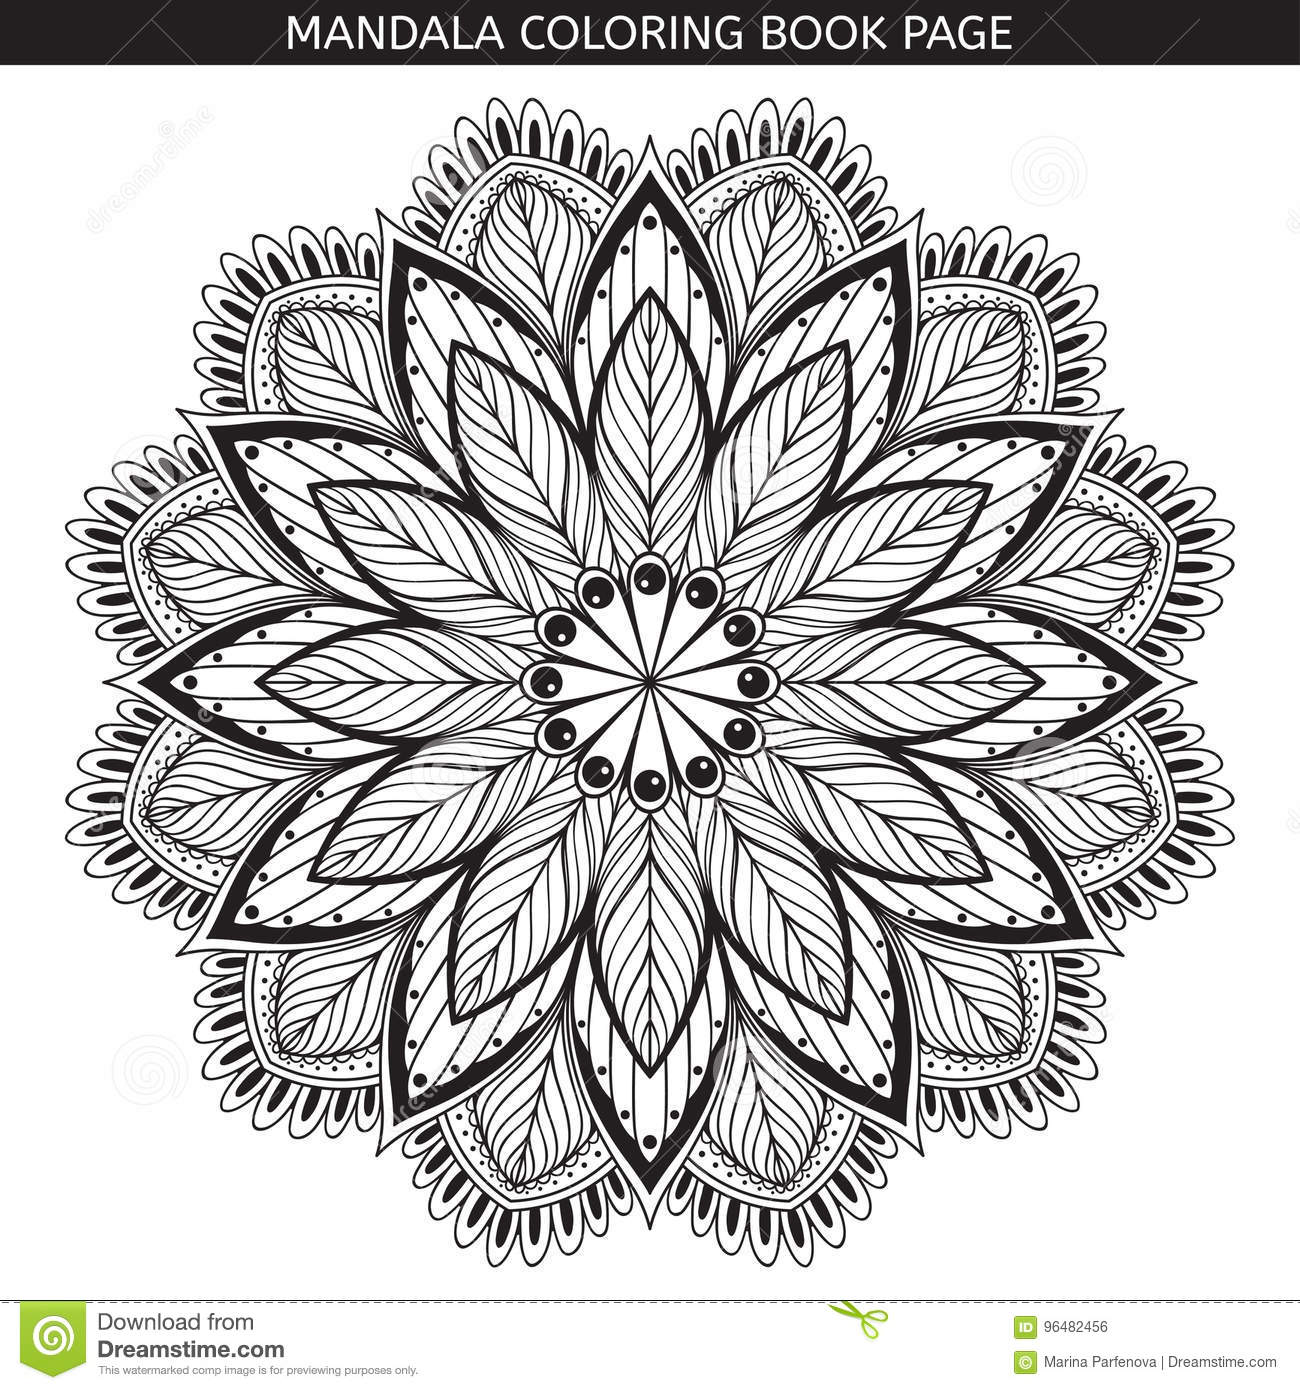 Download Mandala Coloring Book Pages Indian Antistress Medallion White Background Black Outline